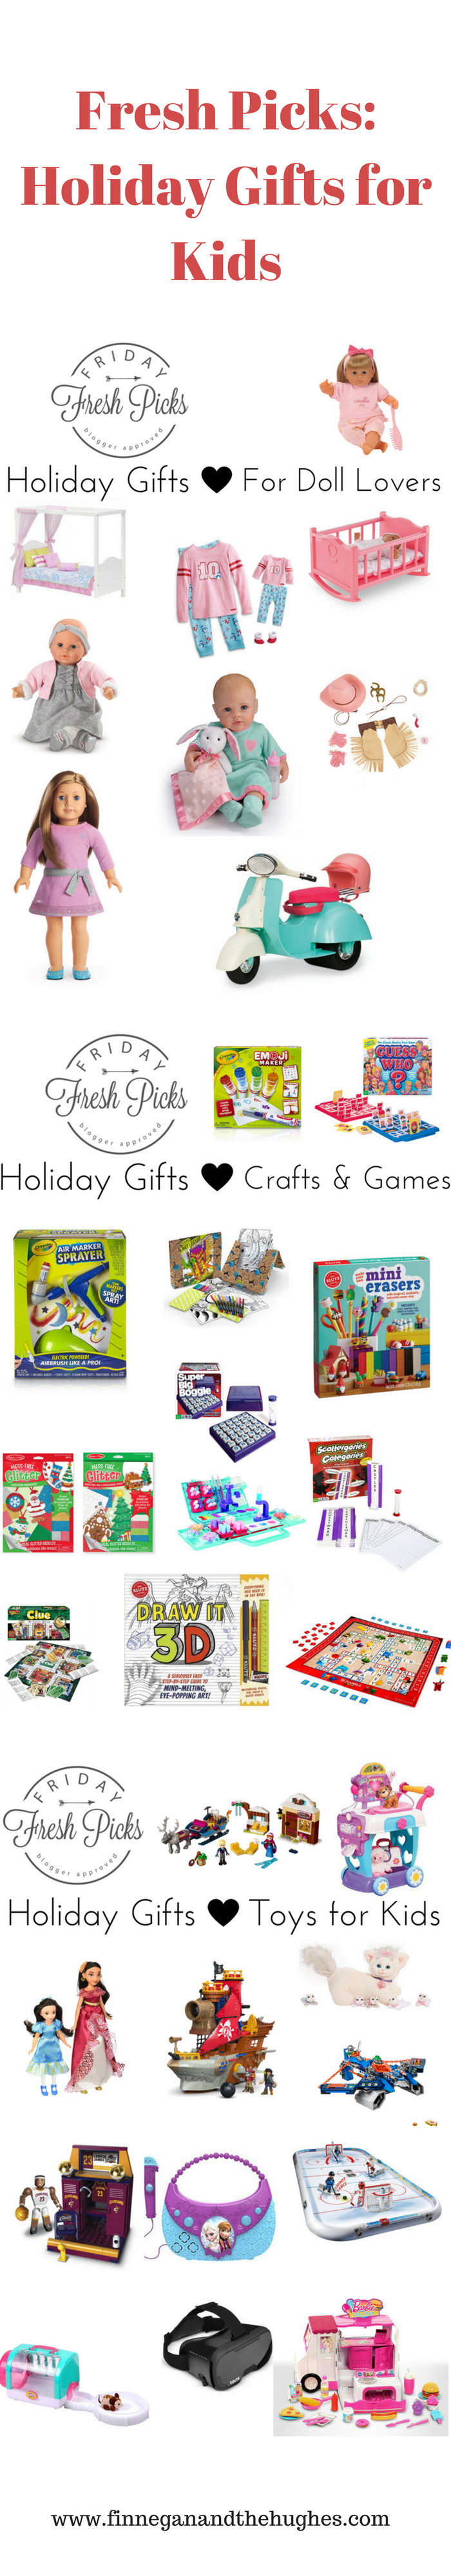 fresh-picks_-holiday-gifts-for-kids-2